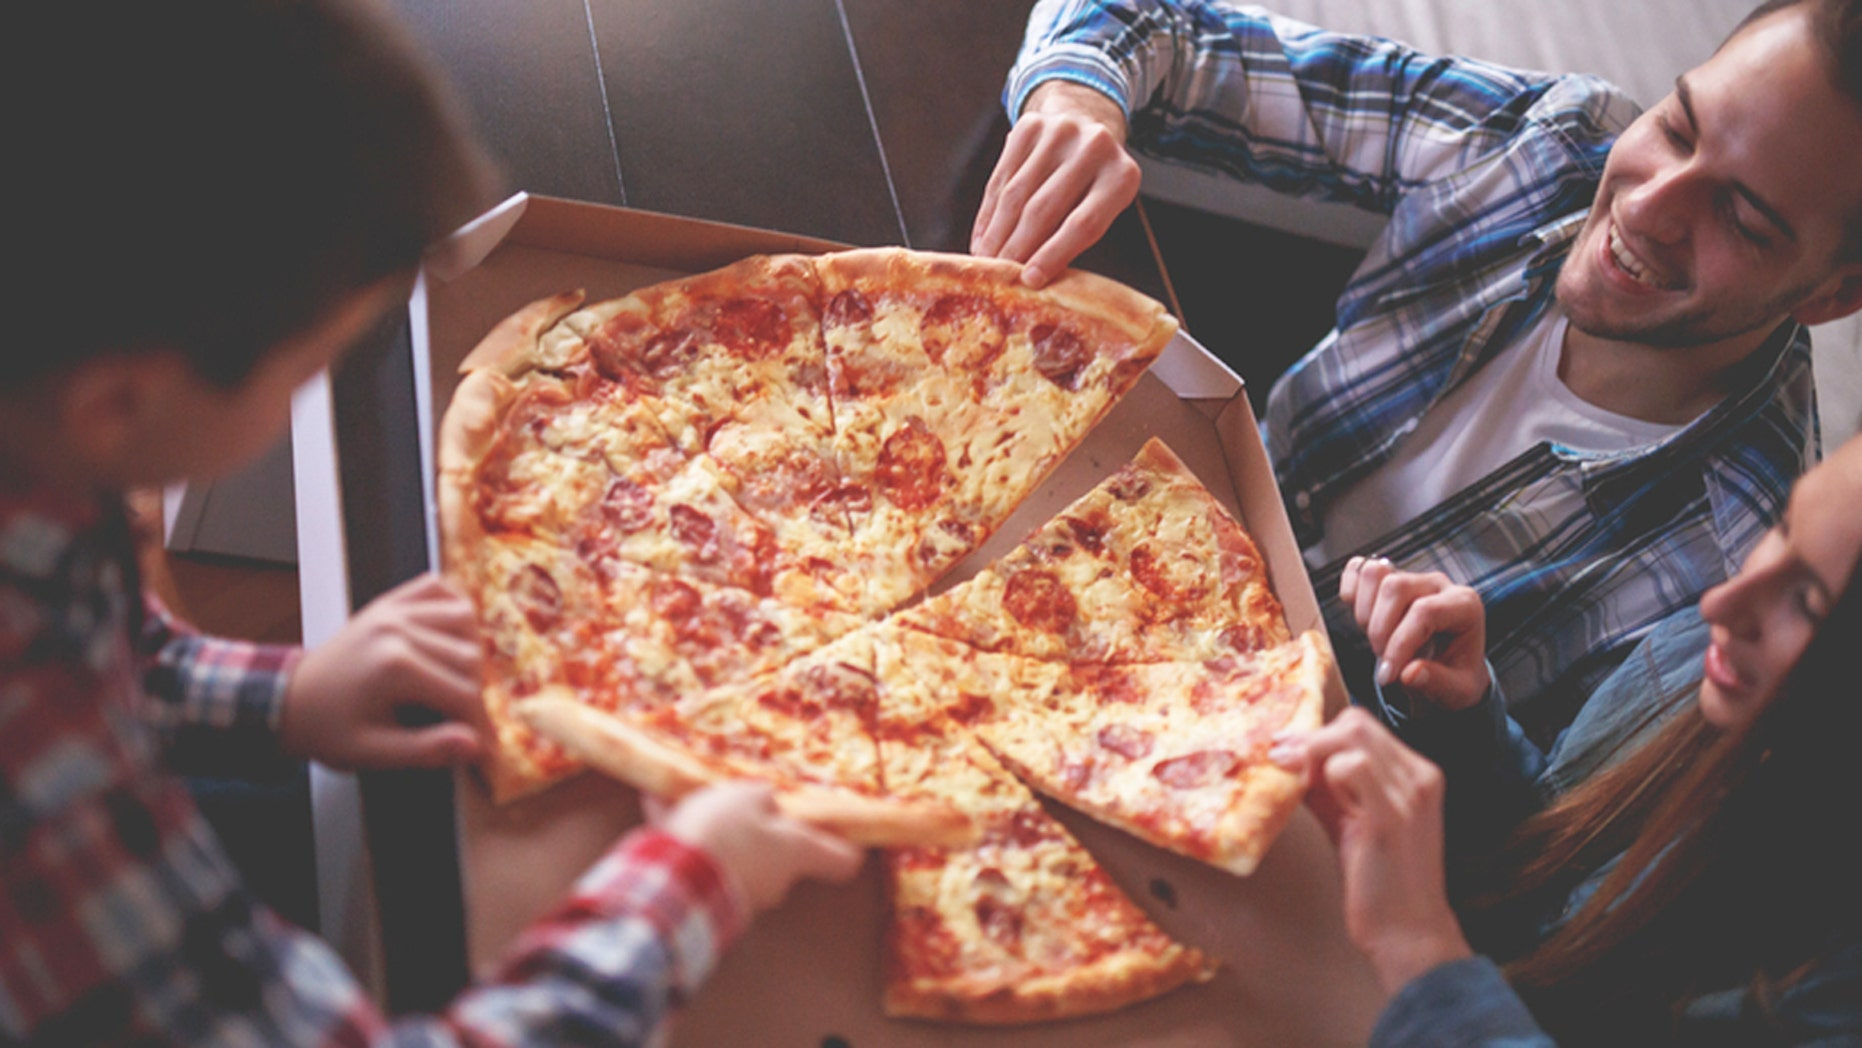 Does pizza make you more productive?